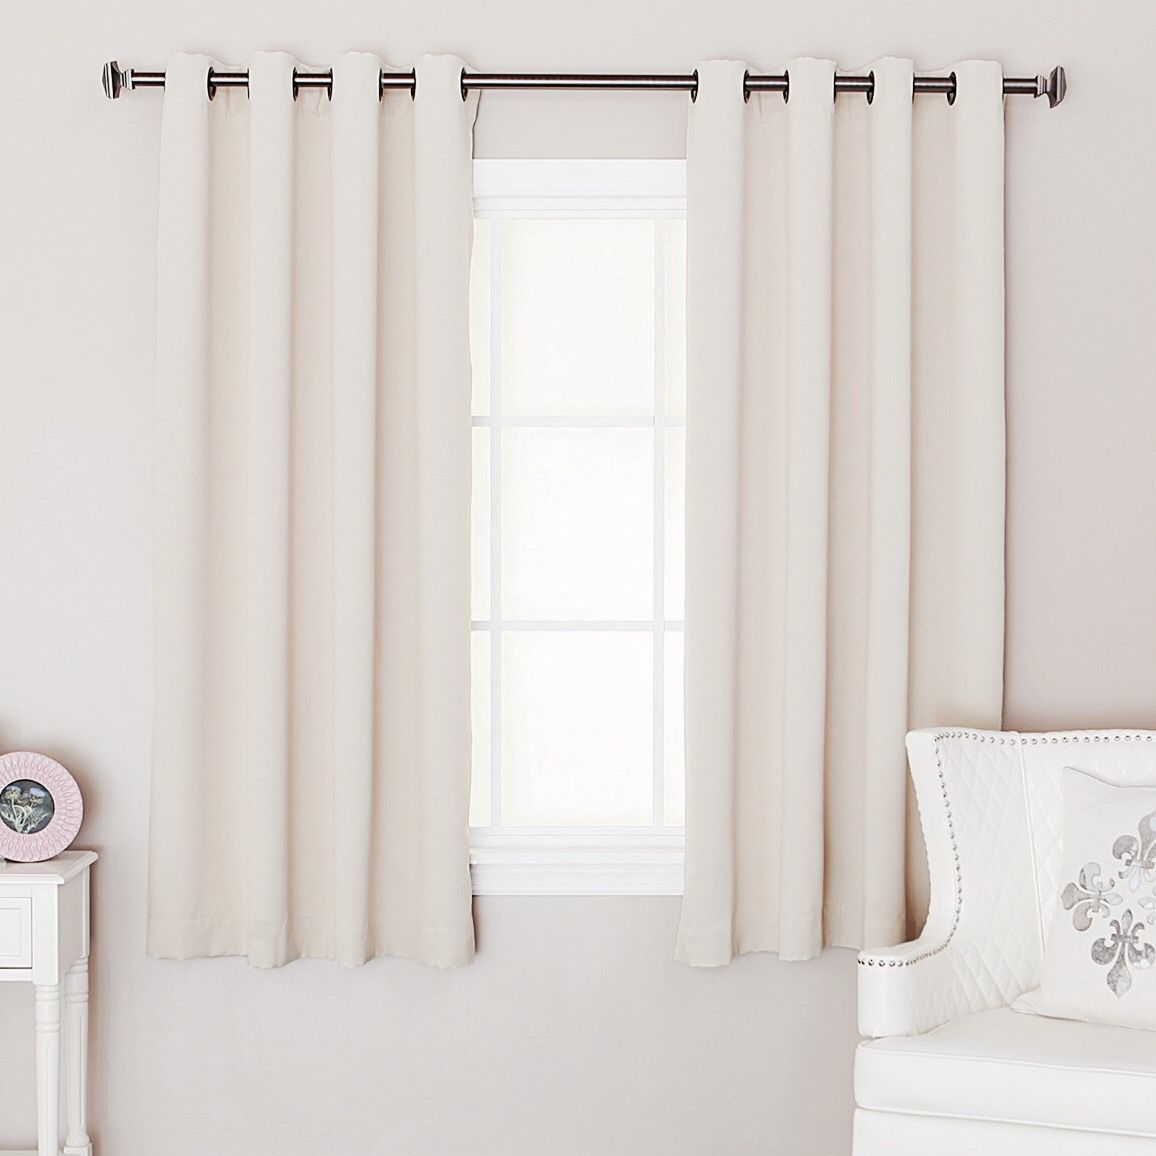 Small window curtain ideas interior pinterest short Window curtains design ideas